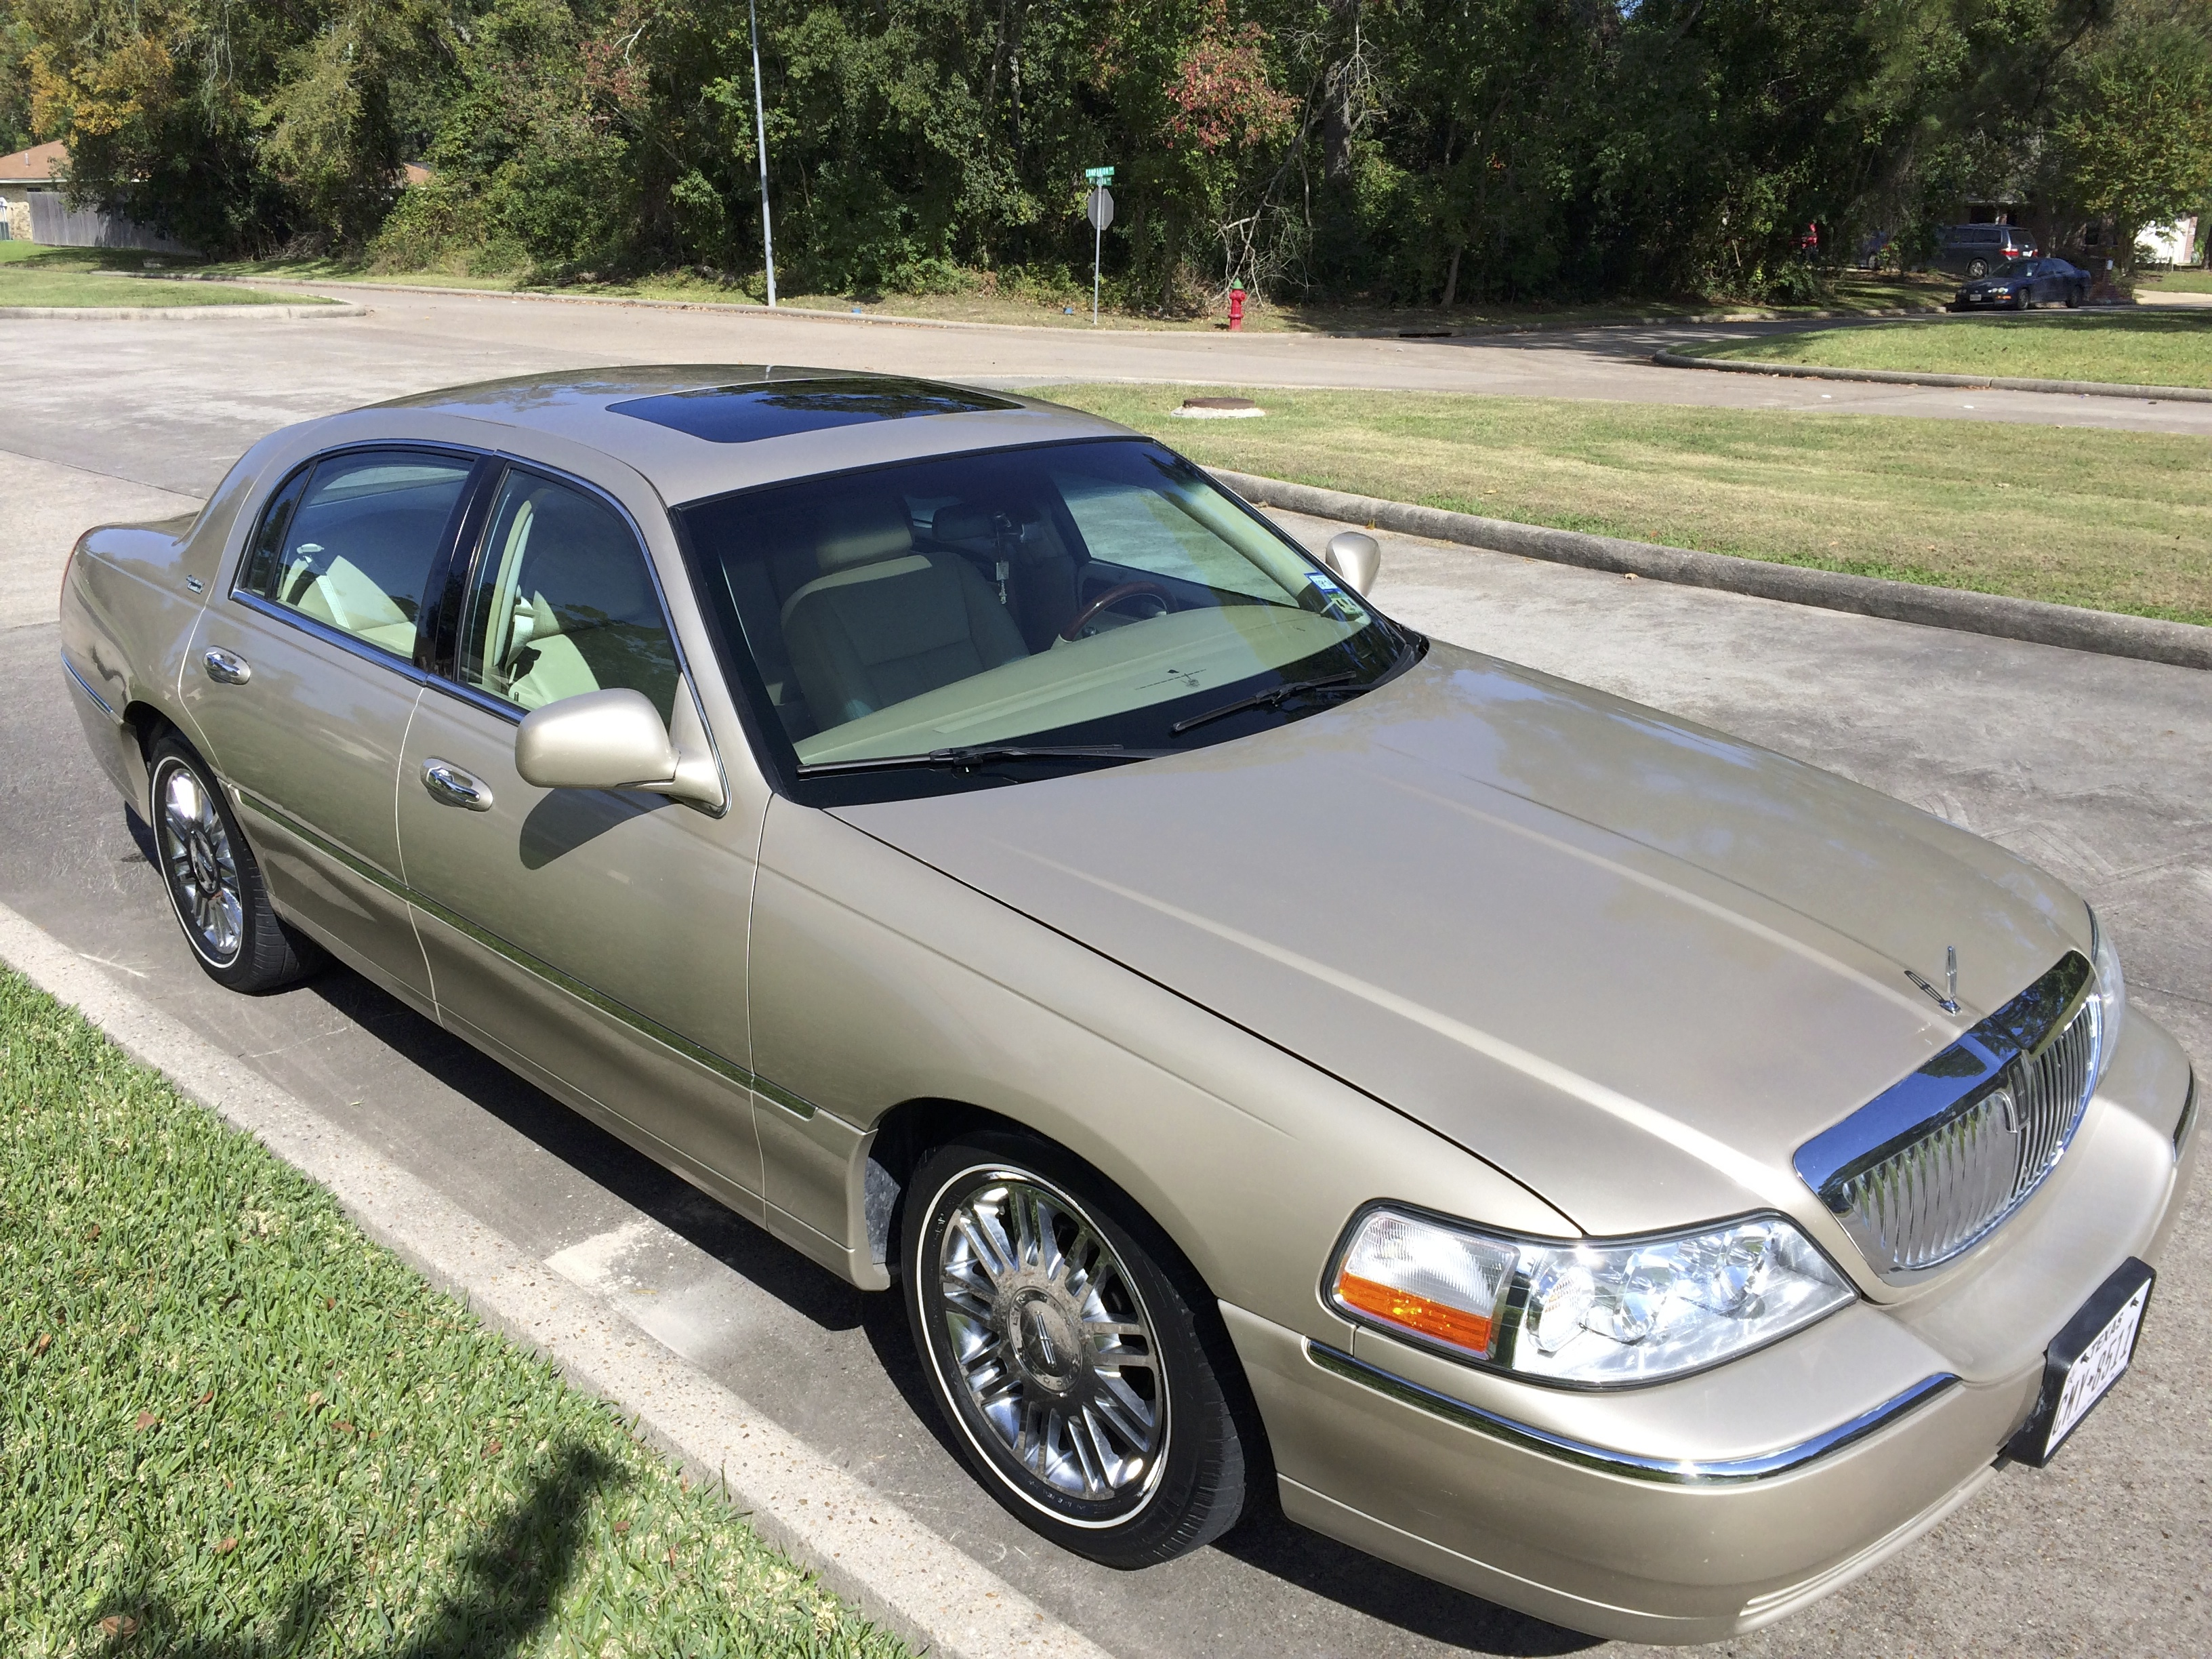 Ojcjunior 2007 Lincoln Town Carsignature Limited Specs Photos